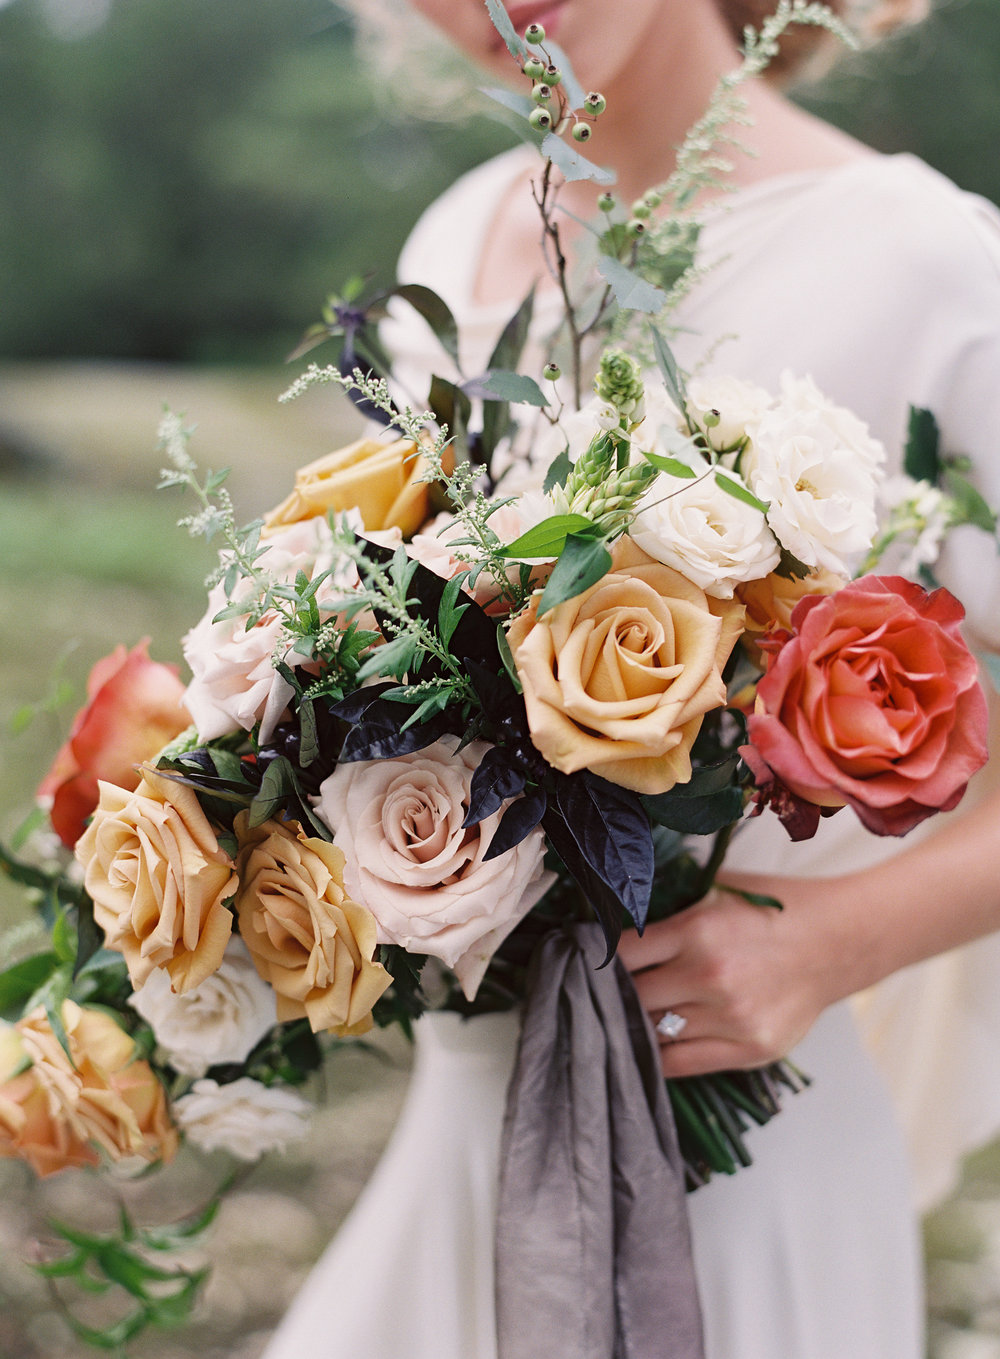 Autumn Wedding Inspiration at the Mill at Fine Creek by Richmond Virginia Wedding Planner East Made Event Company and Michael and Carina Photography39.jpg